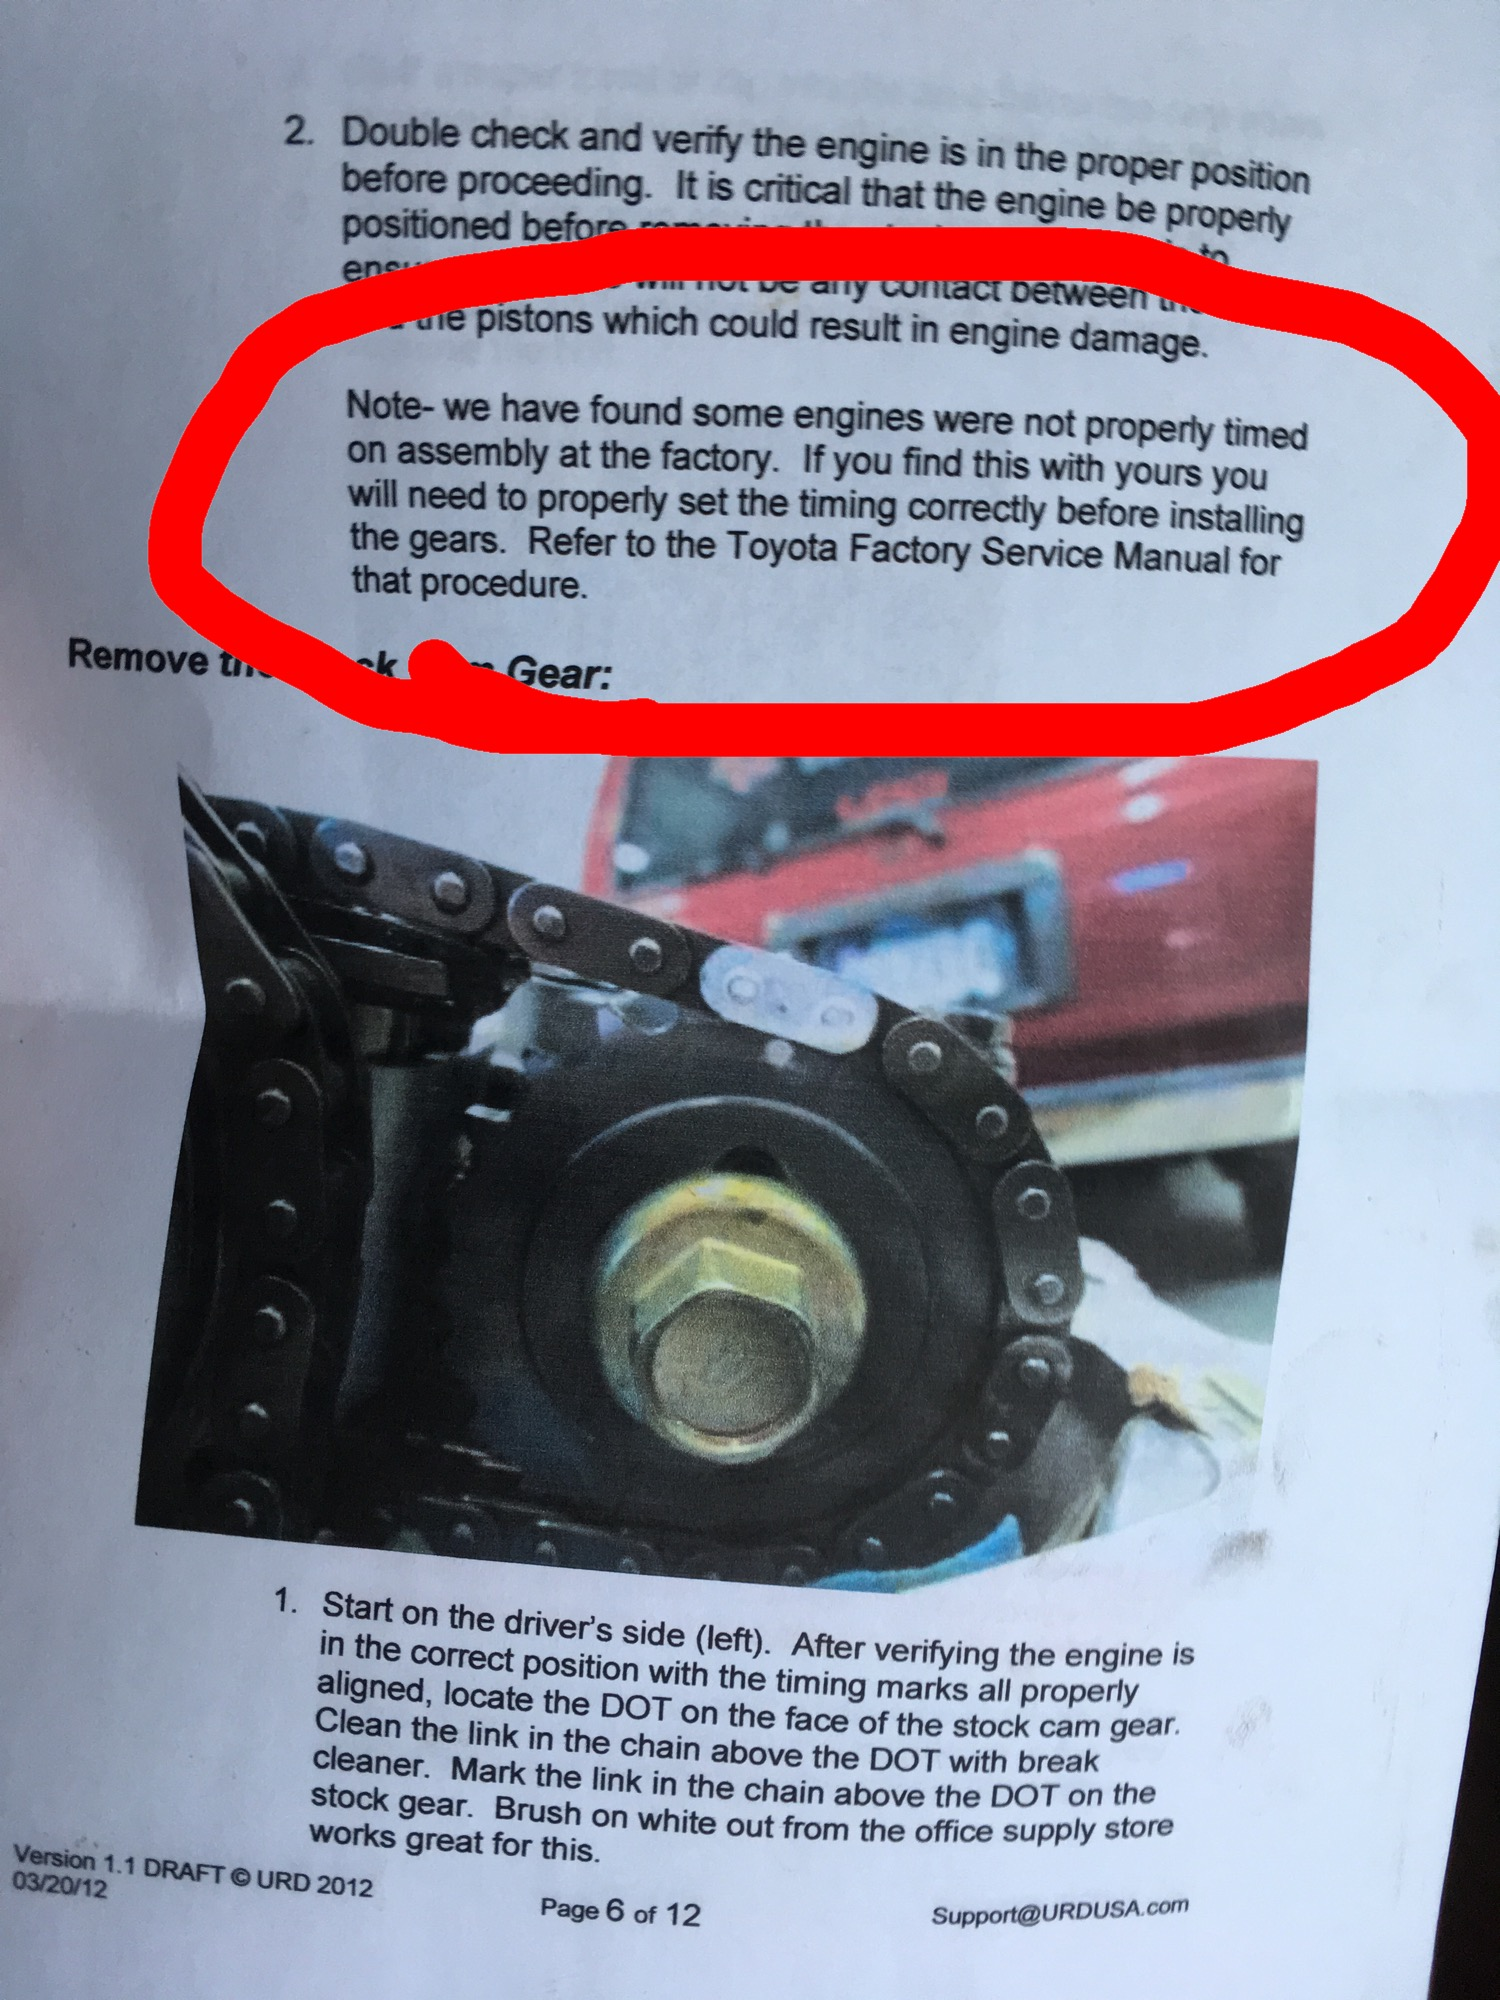 Timing Chain Cover Leak Fix Toyota Fj Cruiser Forum Engine Diagram I Just Read This From Urd Gear Installation Manual